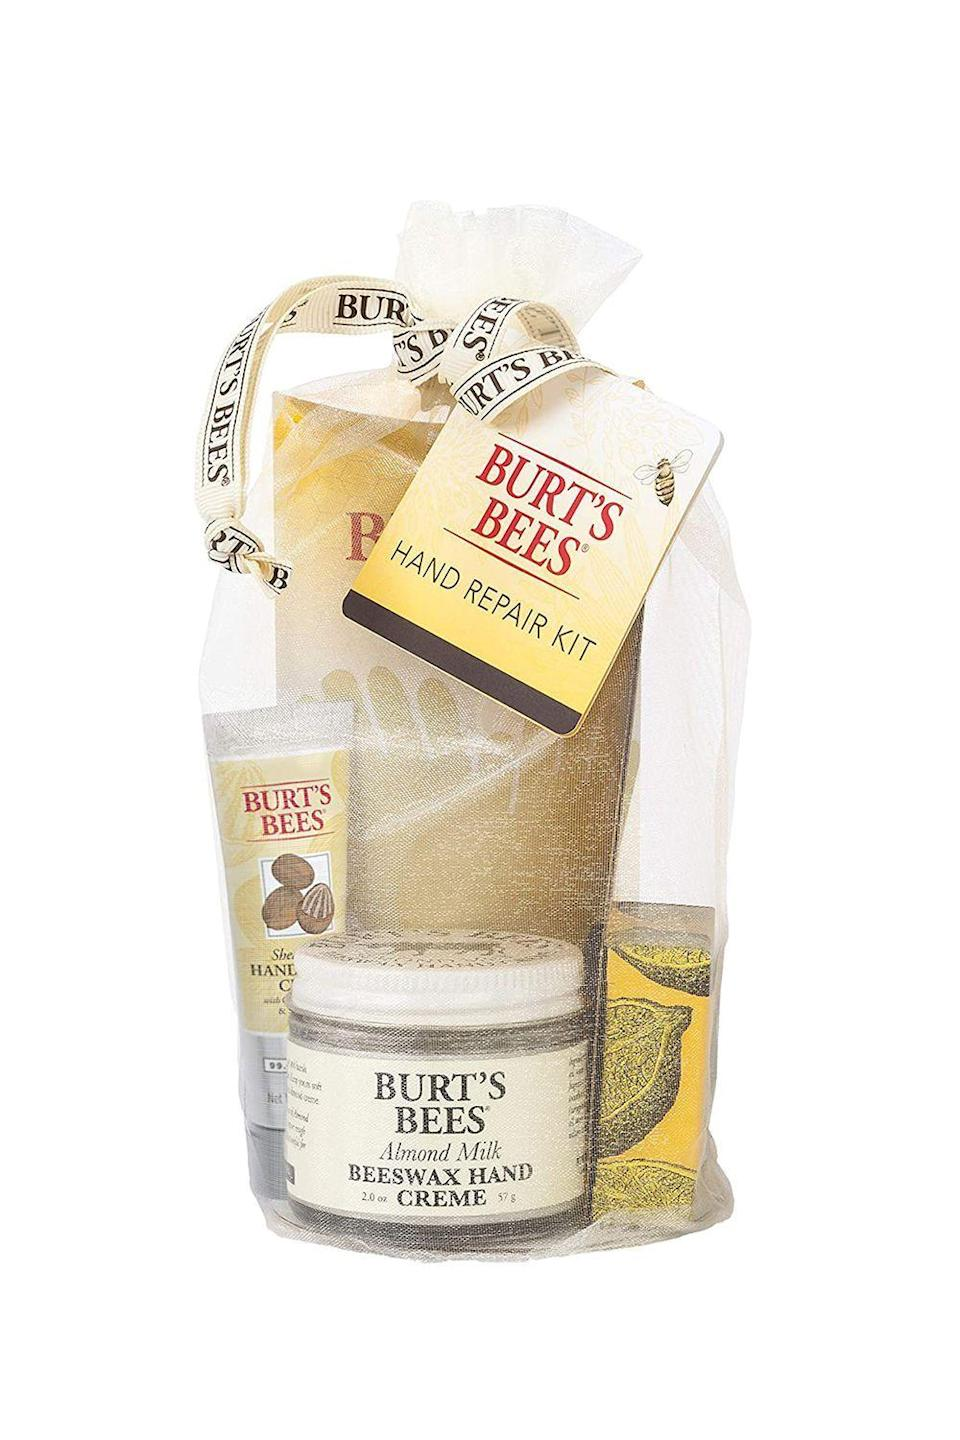 "<p><strong>Burt's Bees</strong></p><p>amazon.com</p><p><strong>$13.96</strong></p><p><a href=""https://www.amazon.com/dp/B0009F3R7E?tag=syn-yahoo-20&ascsubtag=%5Bartid%7C10072.g.26787035%5Bsrc%7Cyahoo-us"" rel=""nofollow noopener"" target=""_blank"" data-ylk=""slk:SHOP NOW"" class=""link rapid-noclick-resp"">SHOP NOW</a></p><p>Between all of those diaper changes and her dutiful effort to stay germ-free, chances are her hands are taking a beating this winter. This soothing gift set, which includes three nourishing creams and a set of gloves to let everything soak in, will do just the trick to keep her hands looking and feeling good. This also makes a great addition to a gift basket.</p>"